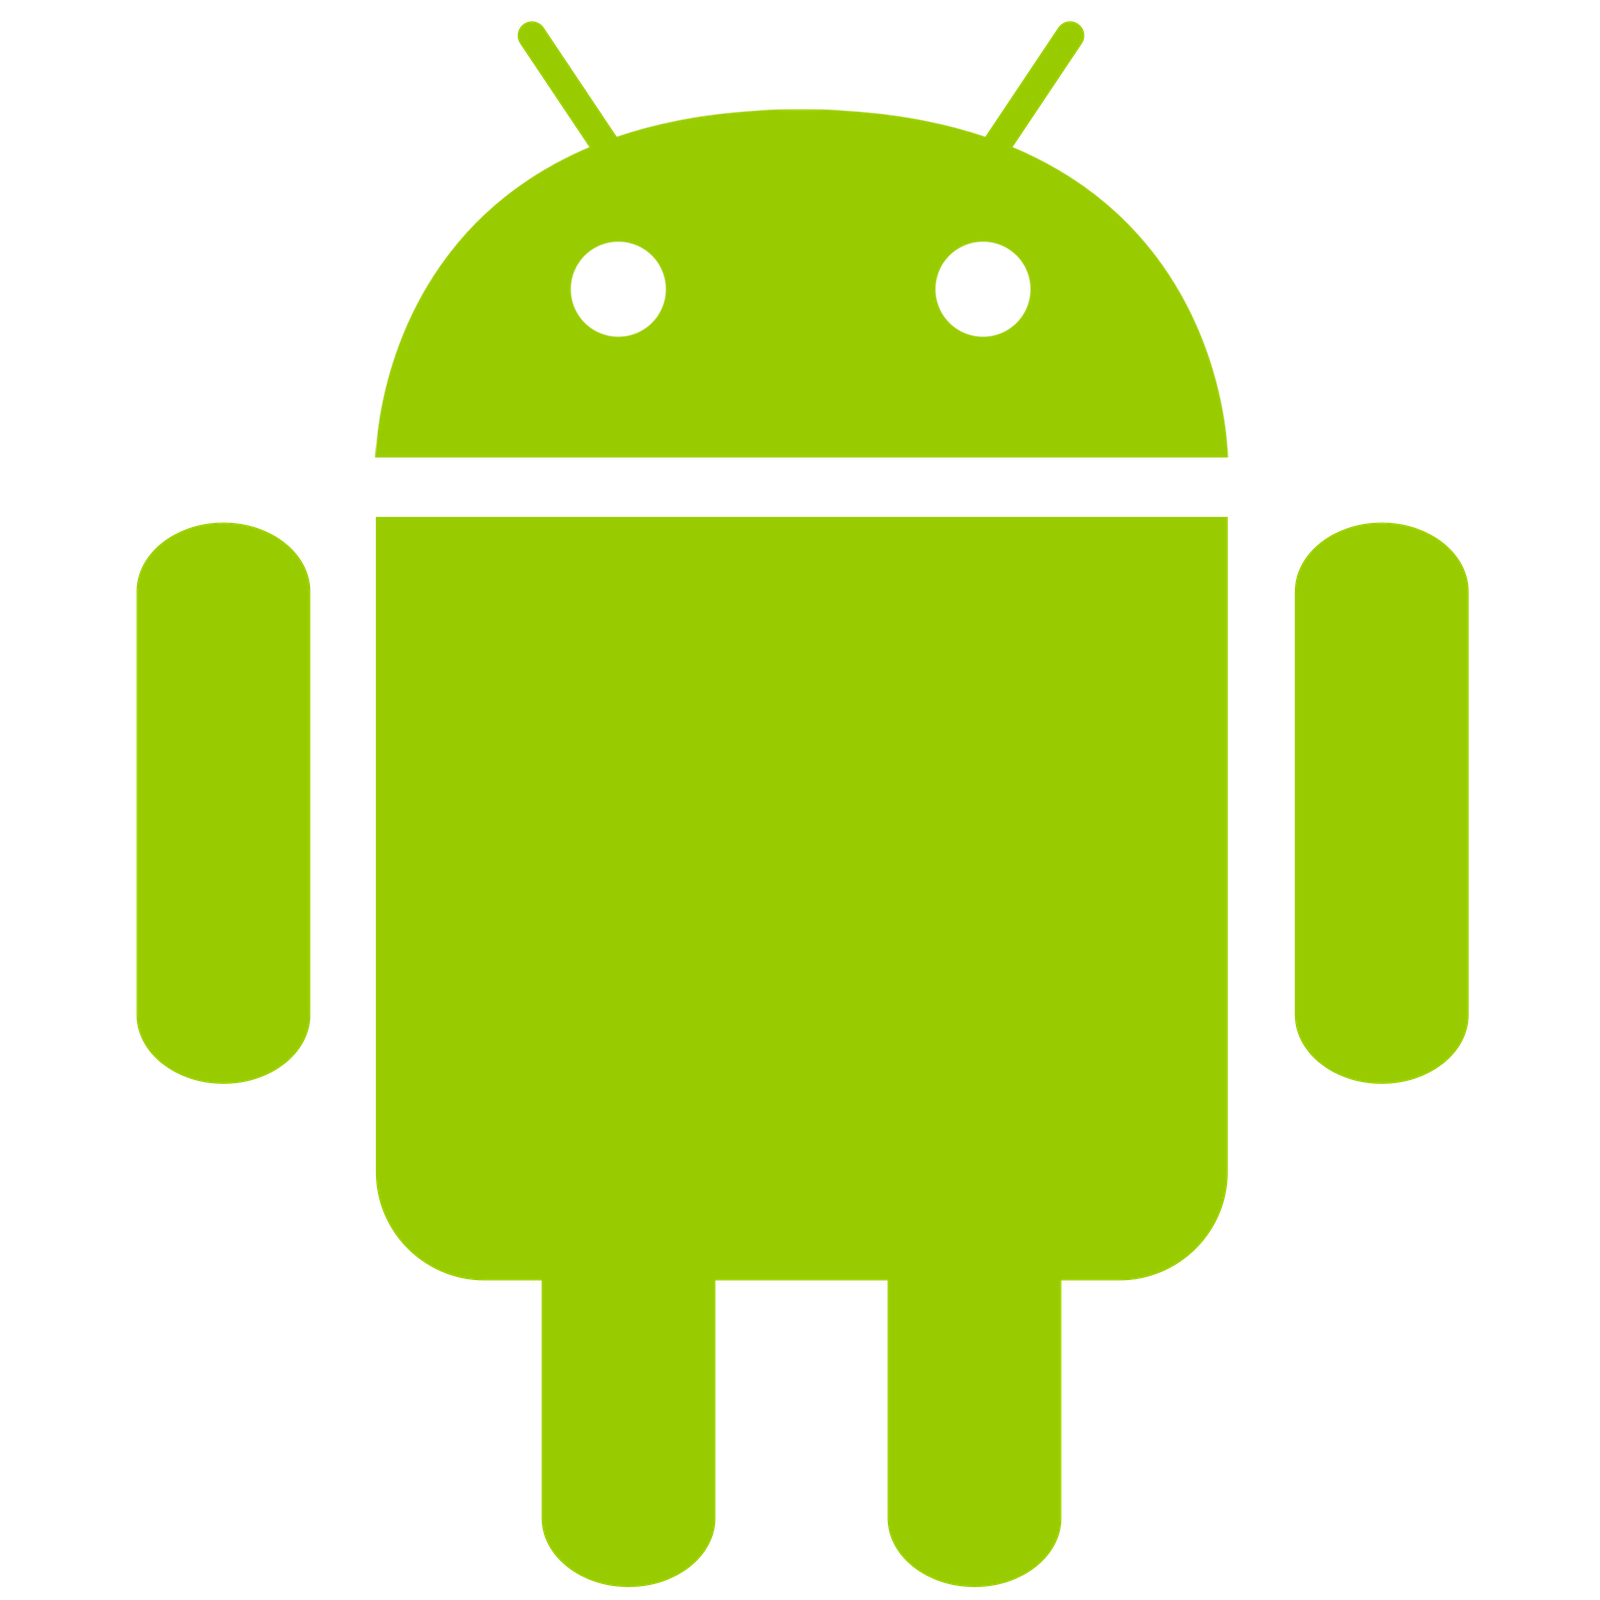 Pics Photos - Related To Android Icons Logo Apple Pictures Post Your